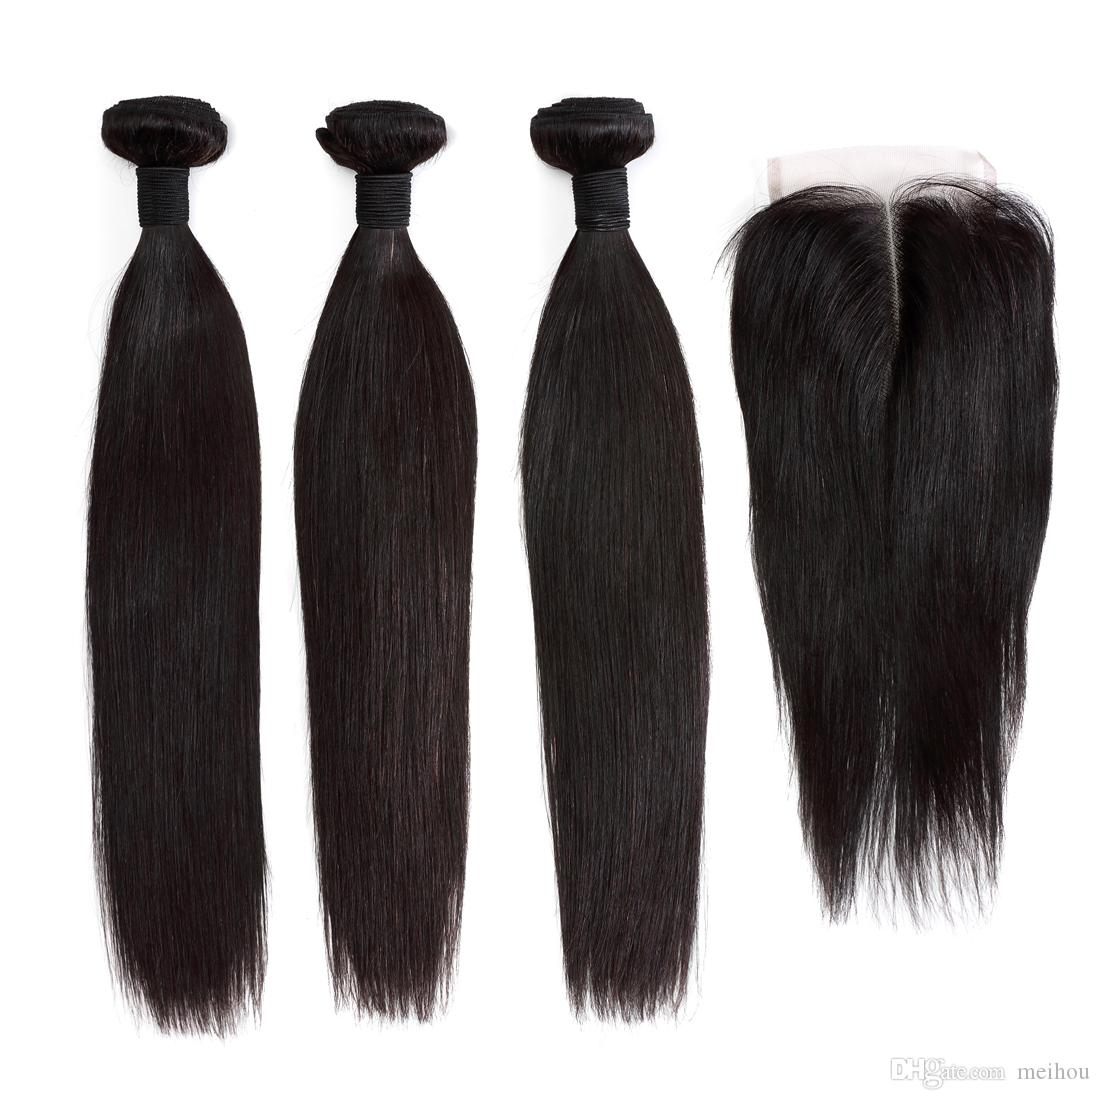 Brazilian Virgin Human Hair Wefts With Closure Straight Human Hair